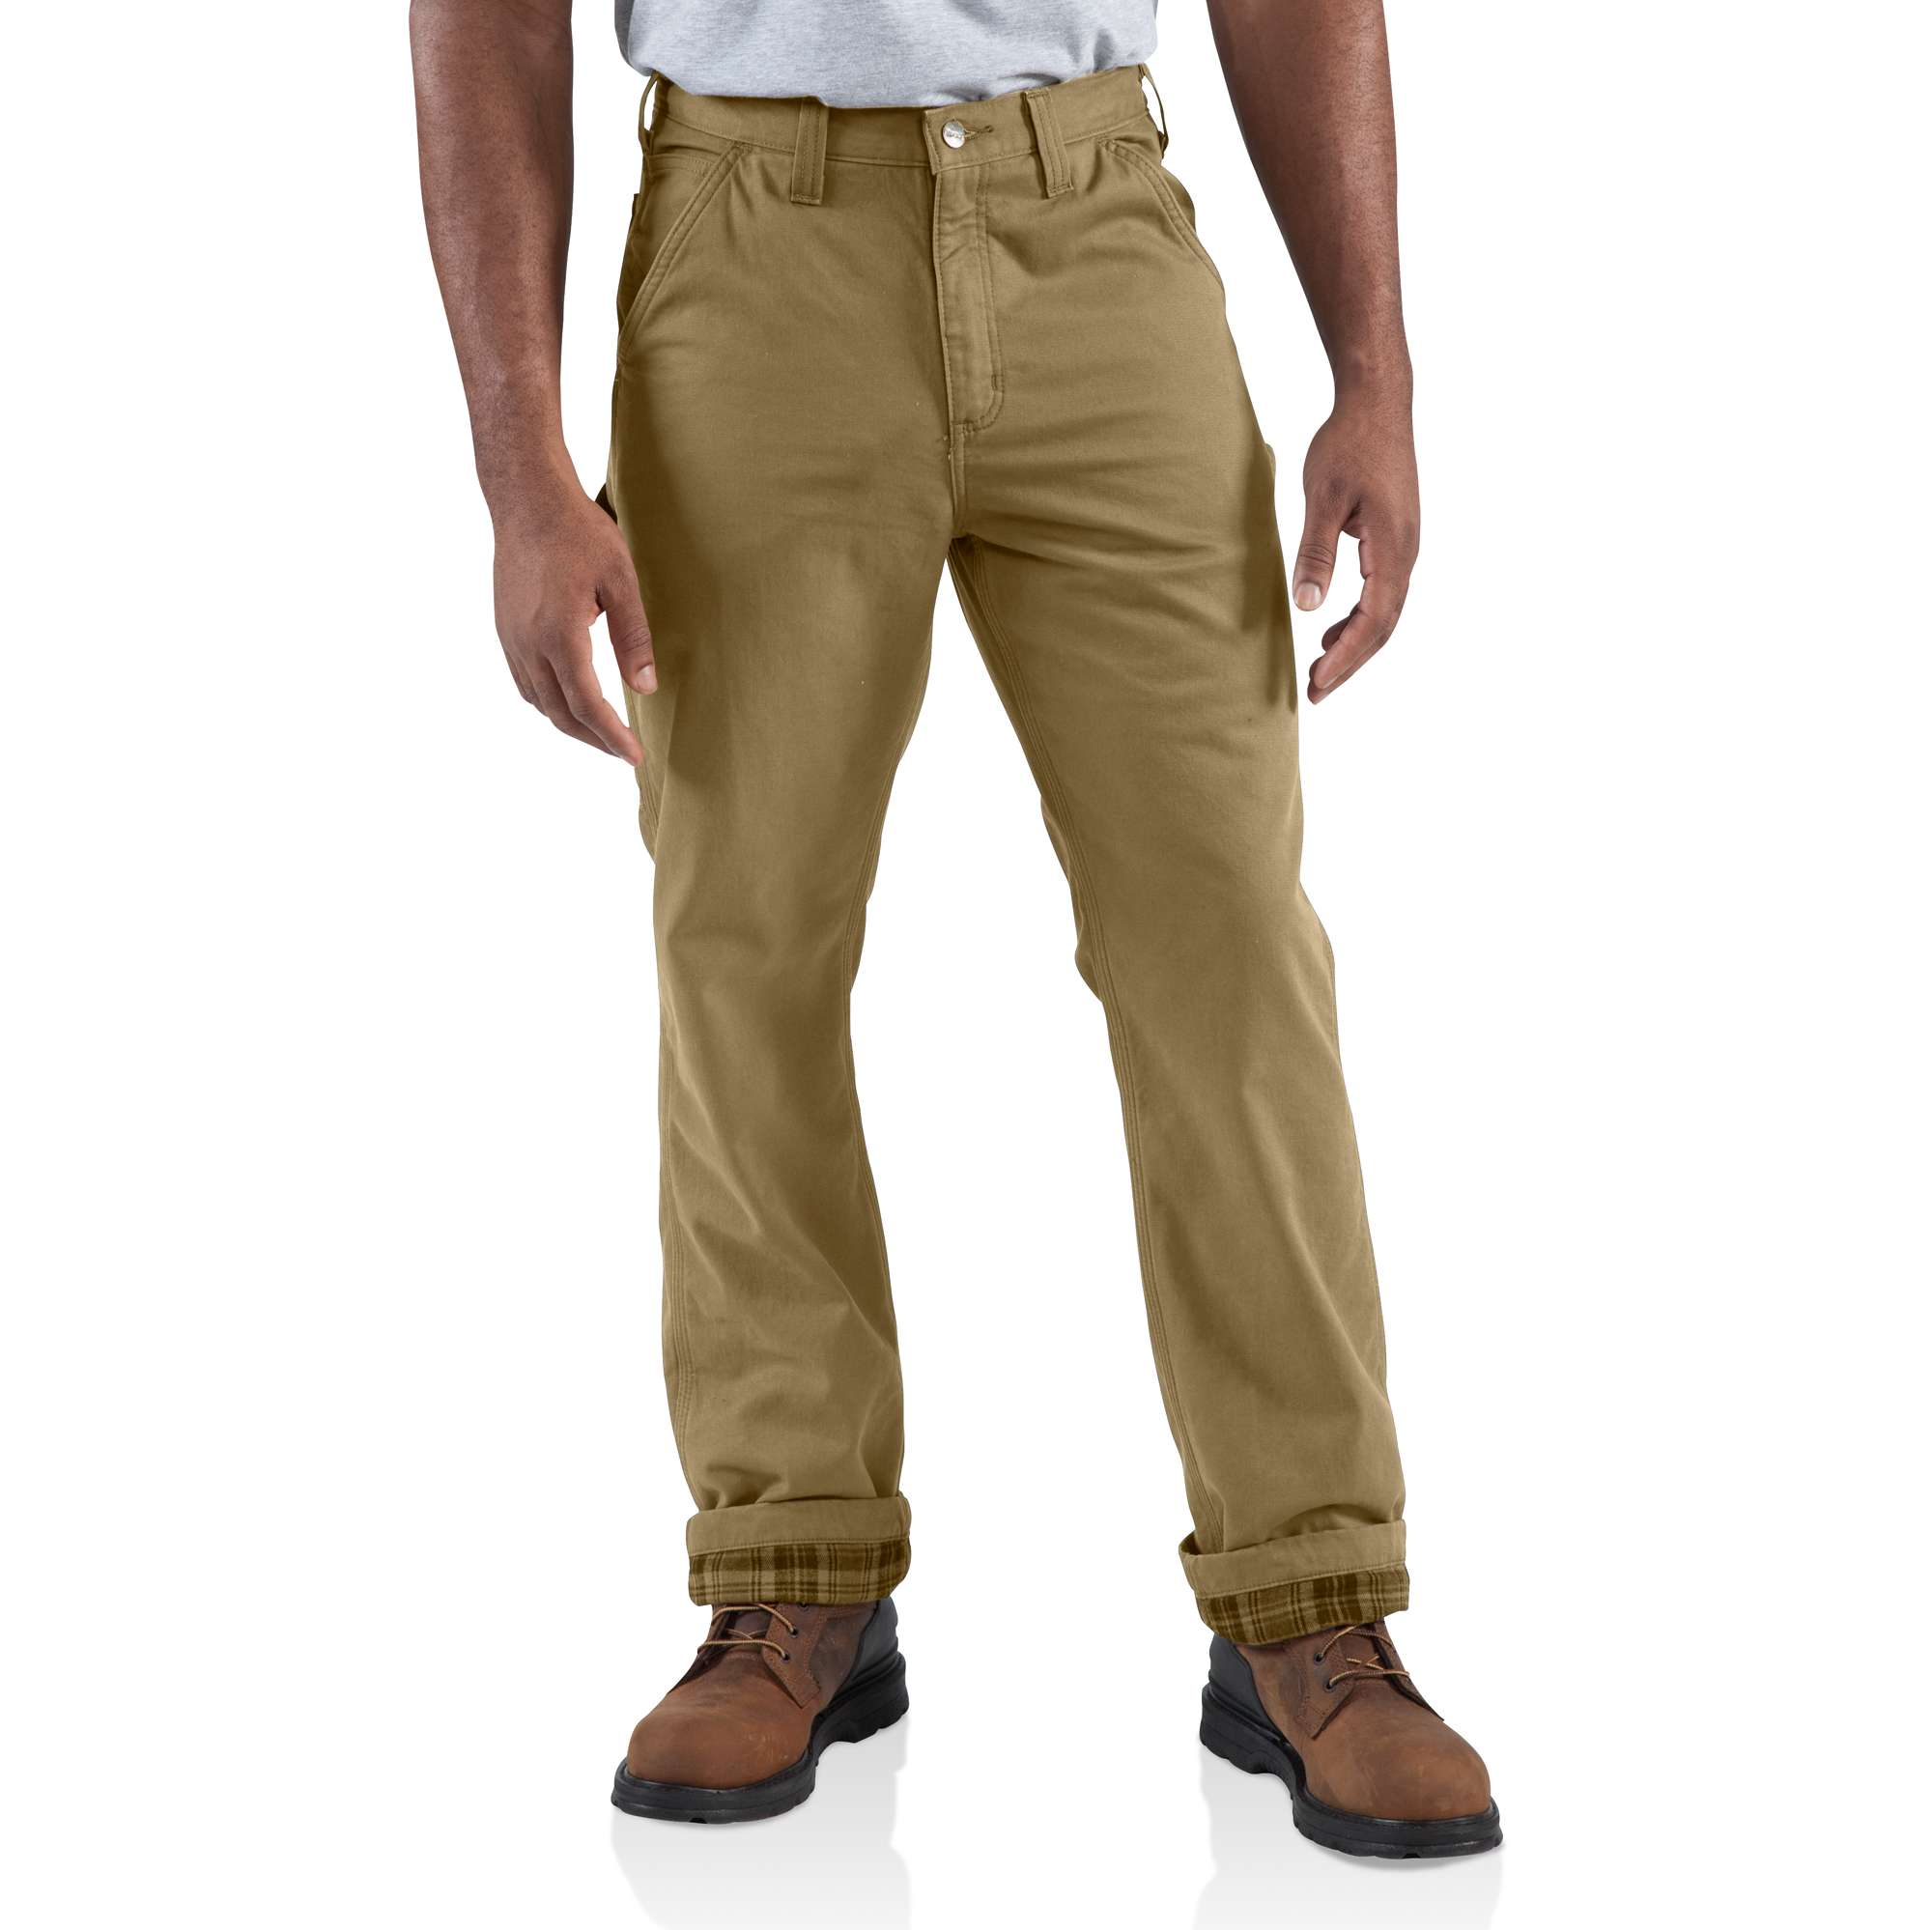 Carhartt Washed-twill Dungaree/flannel Lined Pant